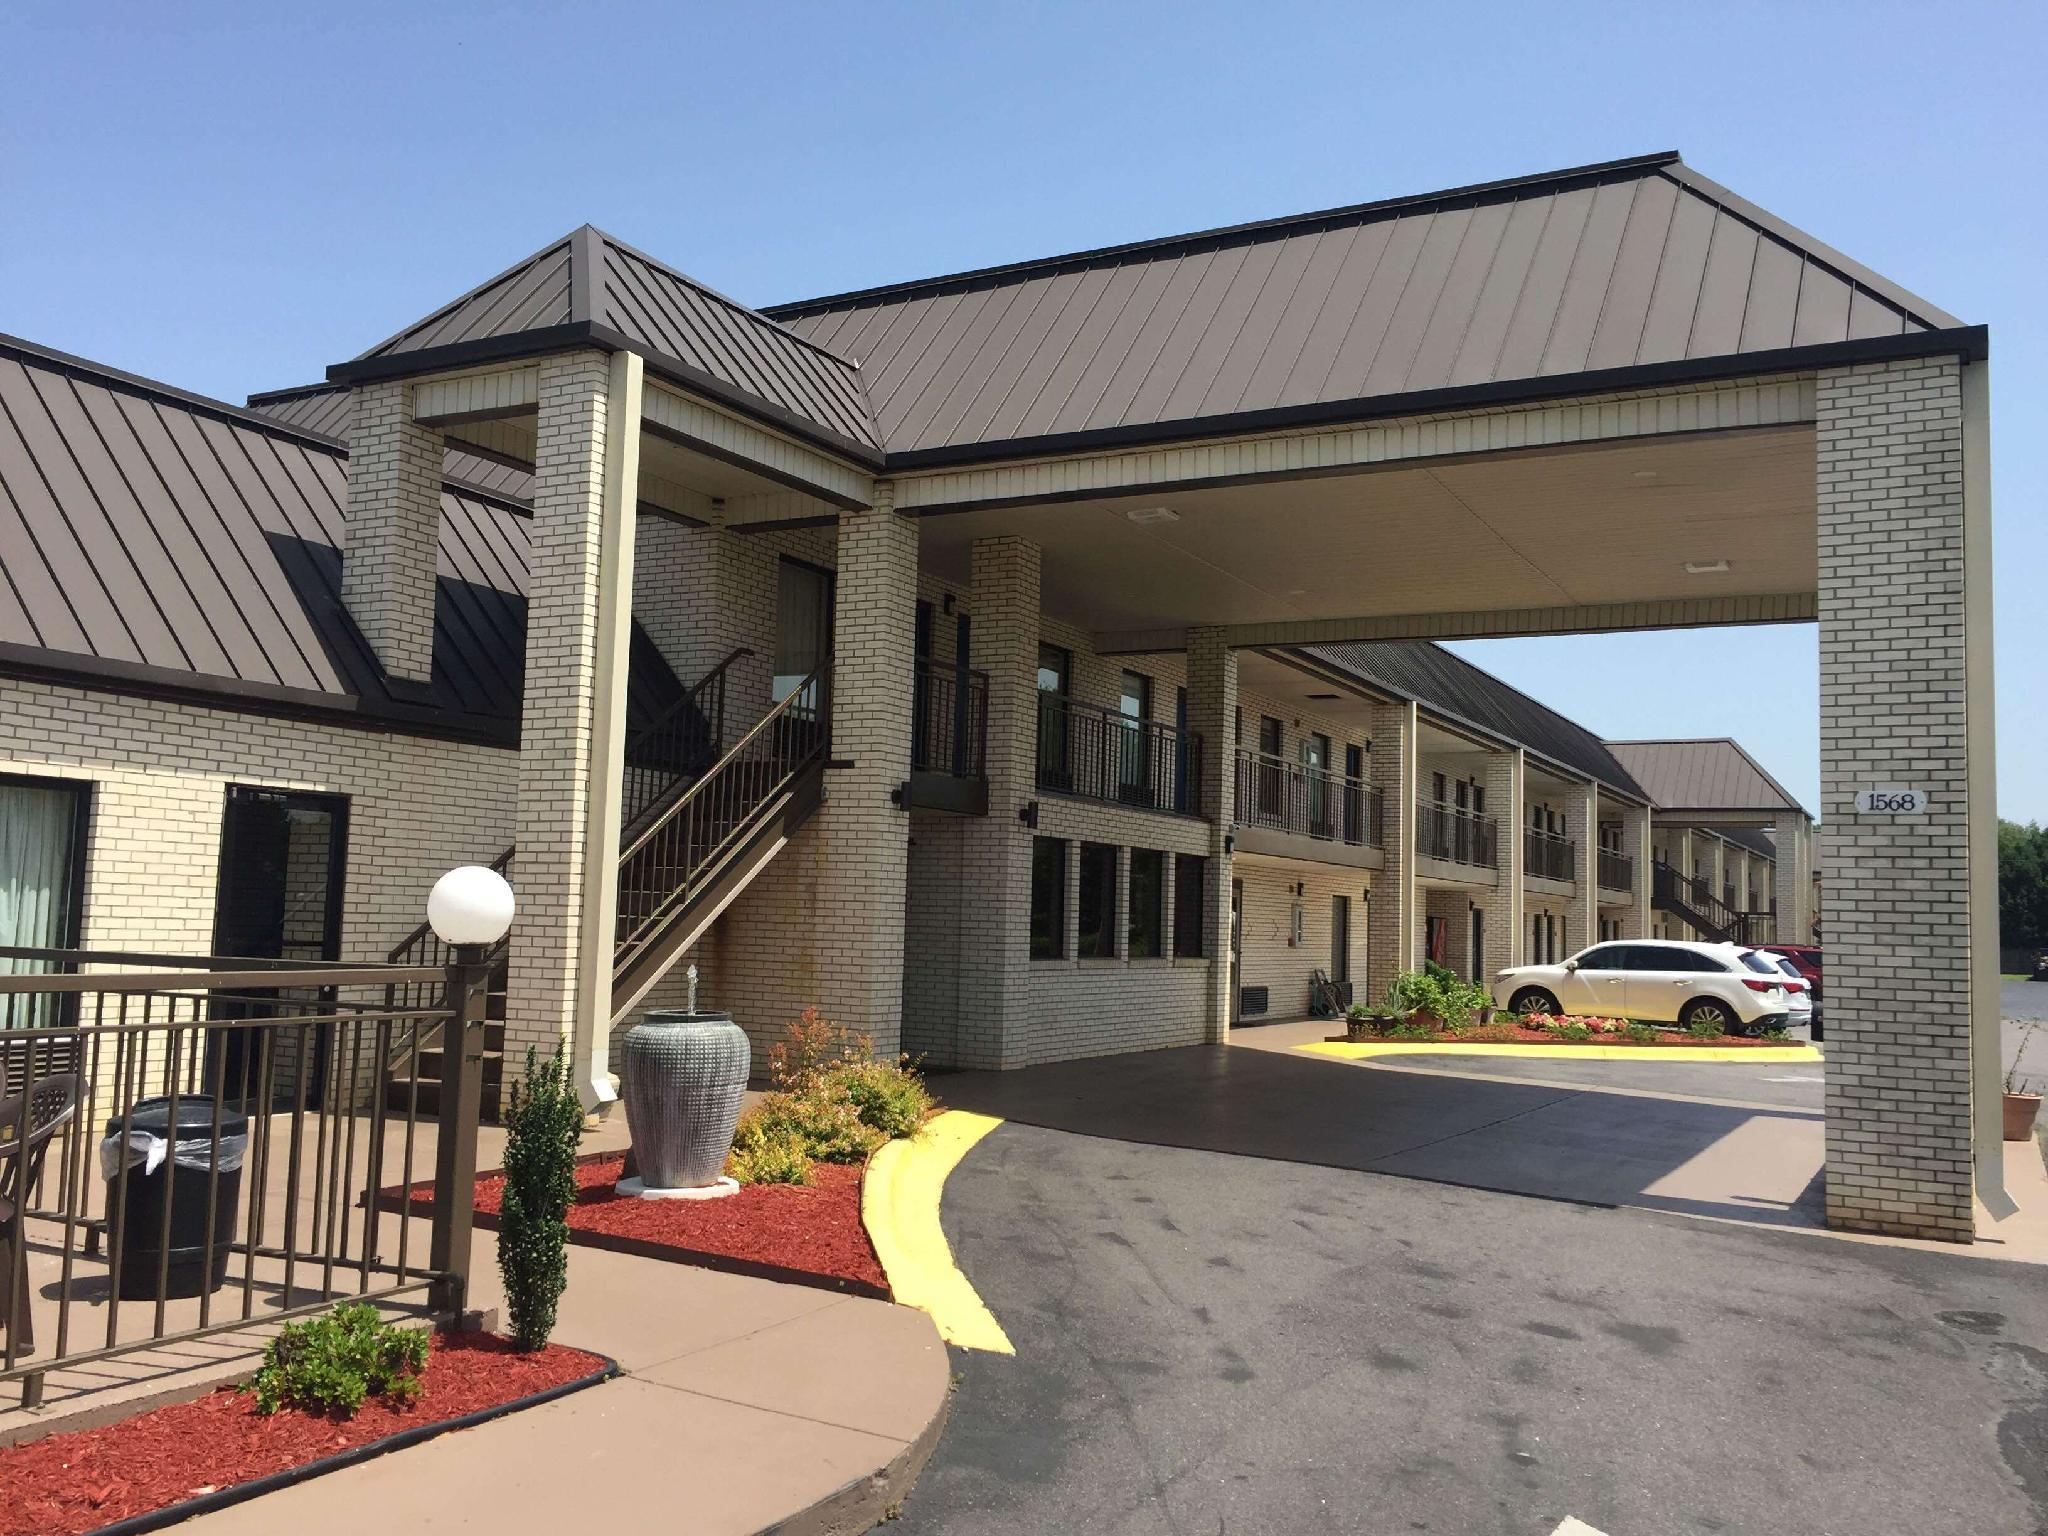 Deluxe Inn and Suites, York